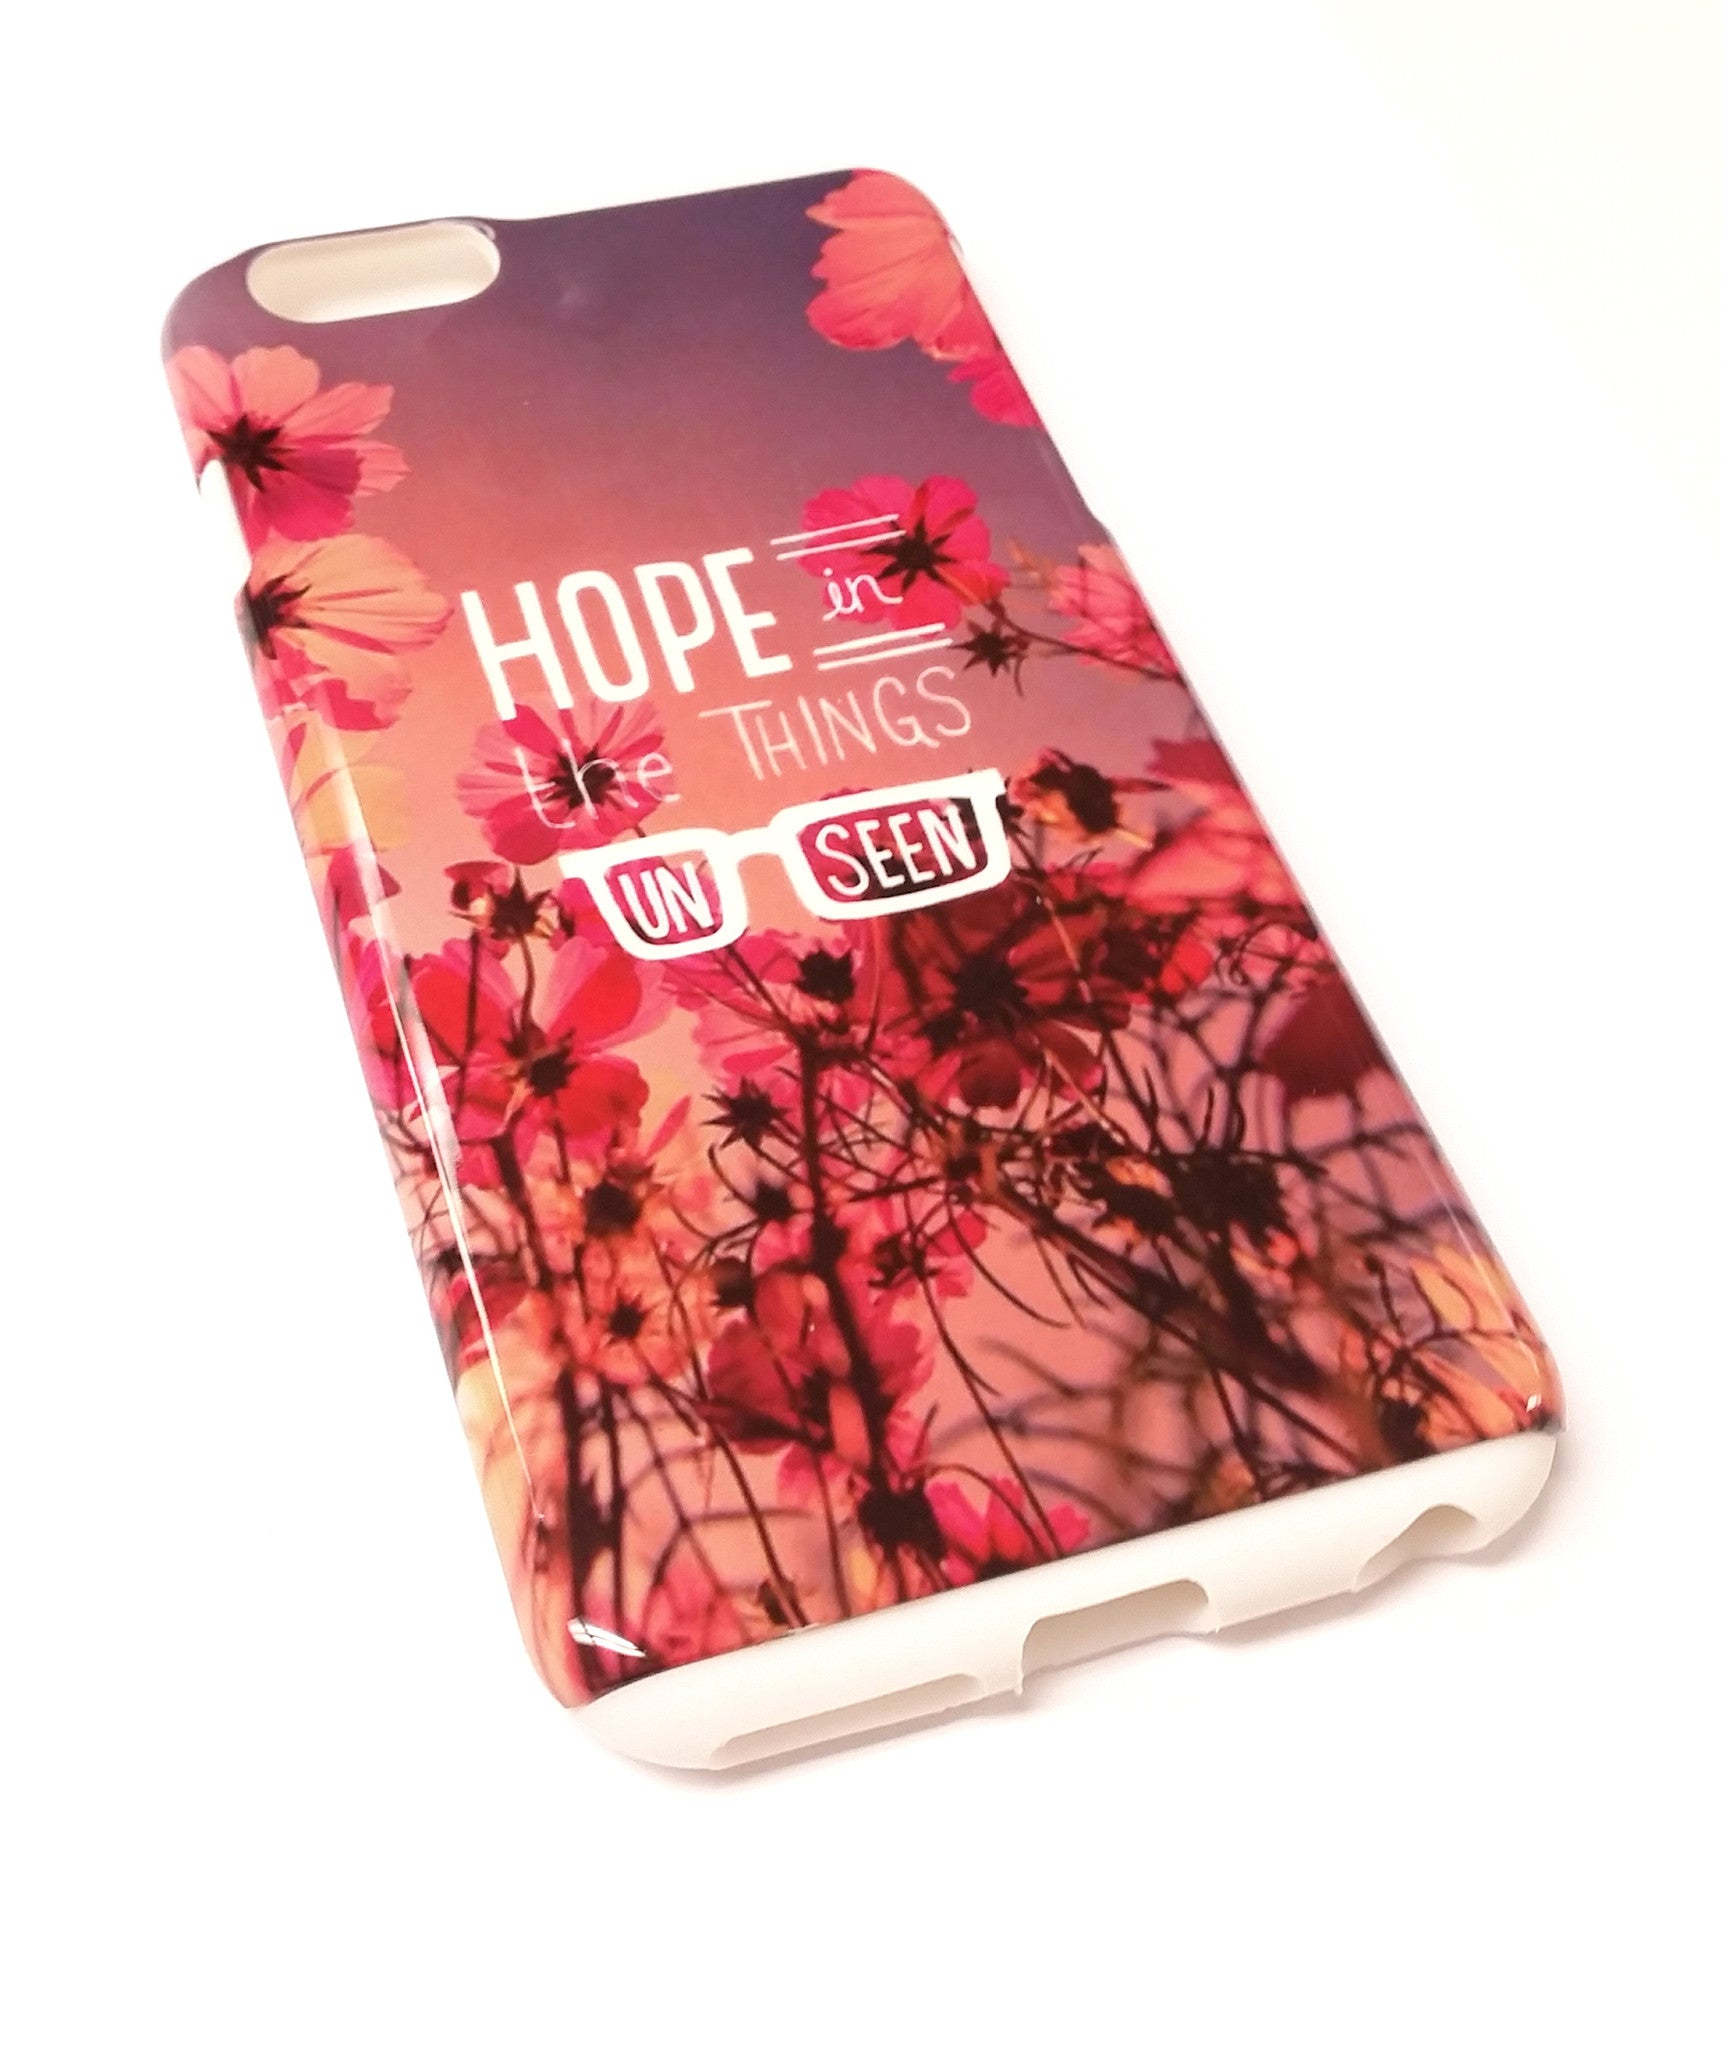 Hope In The Things Unseen iPhone 6/6S/6 Plus Case - Good Row Clothing  - 2